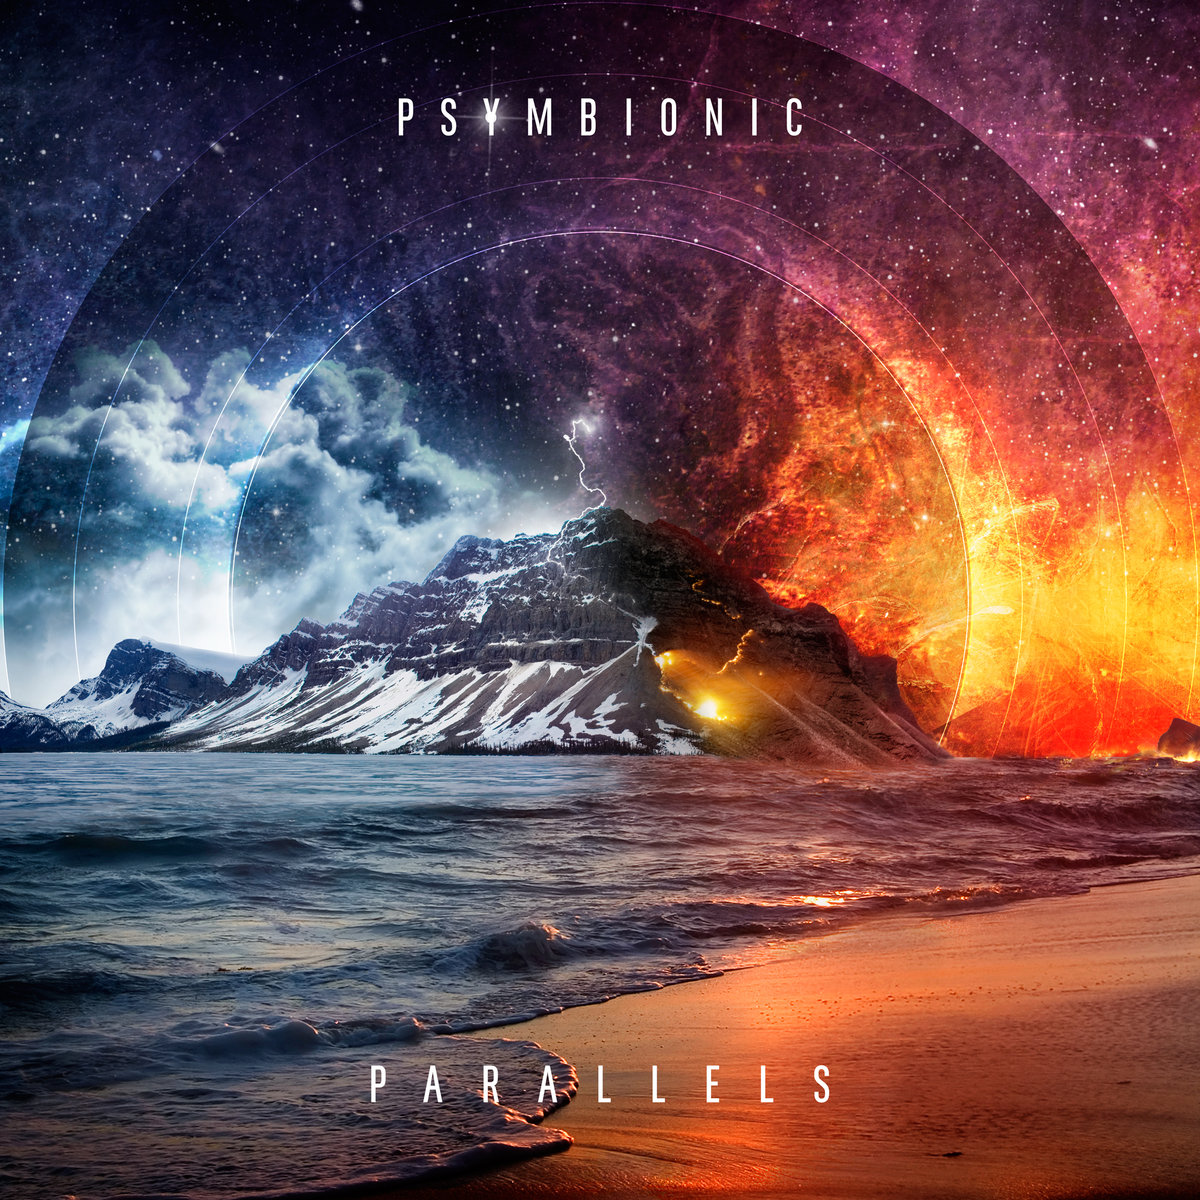 Psymbionic - Slither (VibeSquaD Remix) @ 'Parallels LP' album (electronic, dubstep)